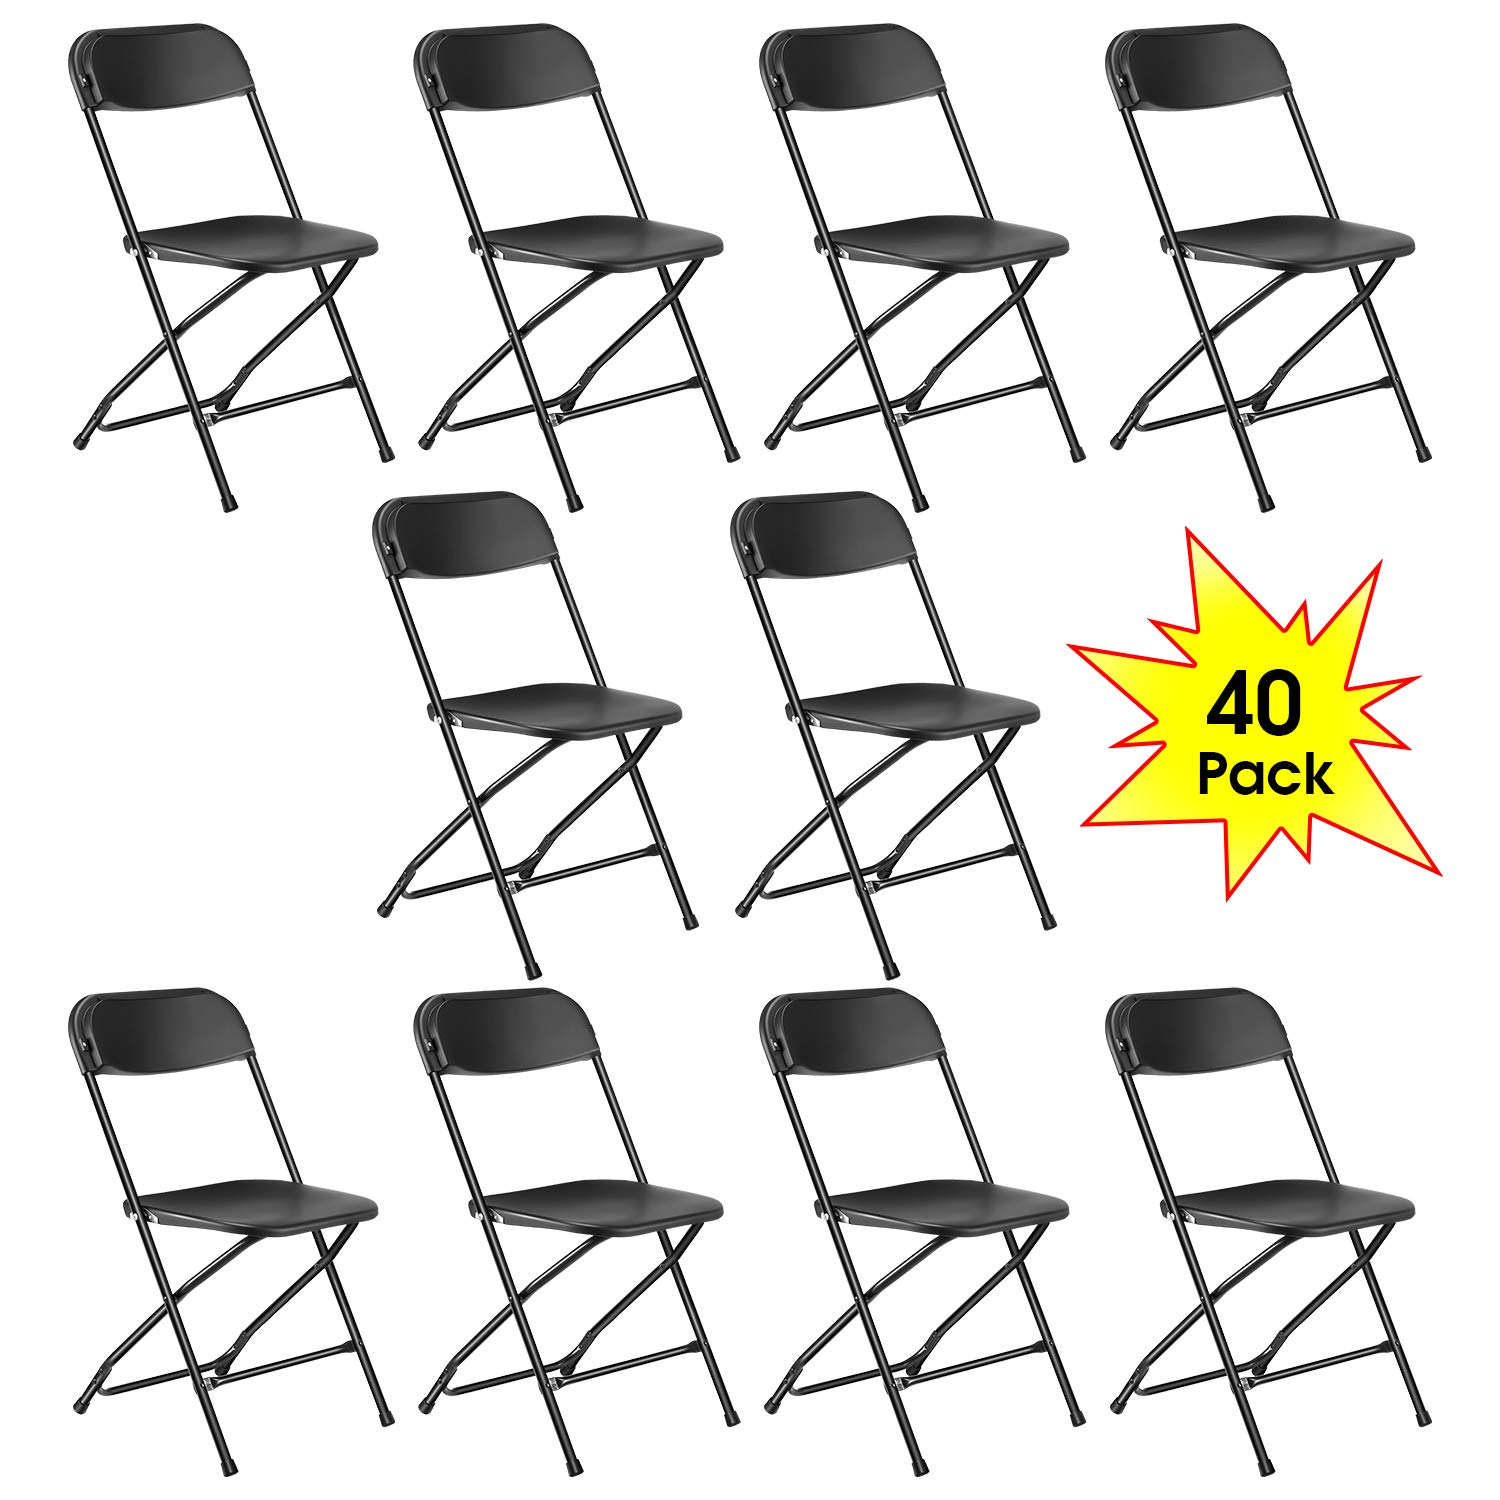 Kealive Black Plastic Folding Chair 40 Pack Fold Chair 330 lbs Weight Capacity for Events, Premium Lifetime Fold Up Chair Portable 18'' L x 18'' W x 31'' H by kealive